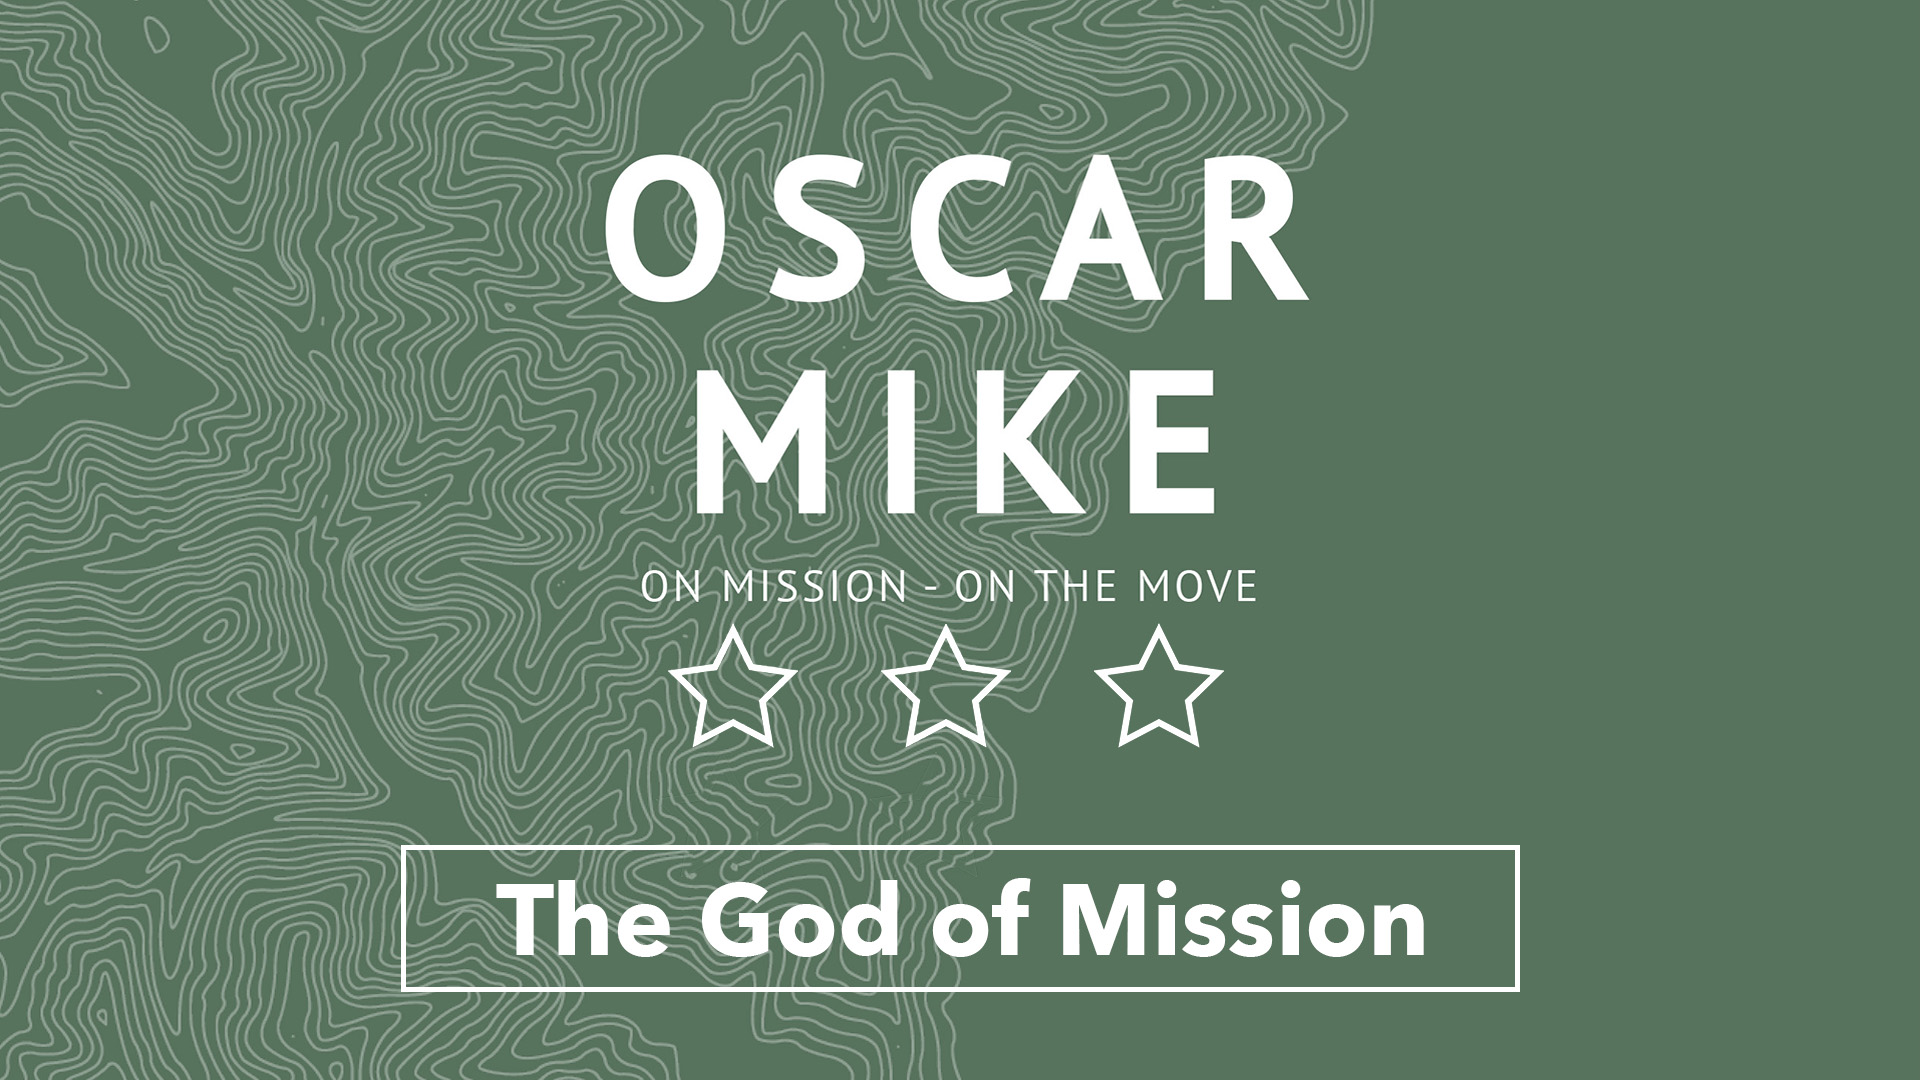 Oscar Mike - The God of Mission